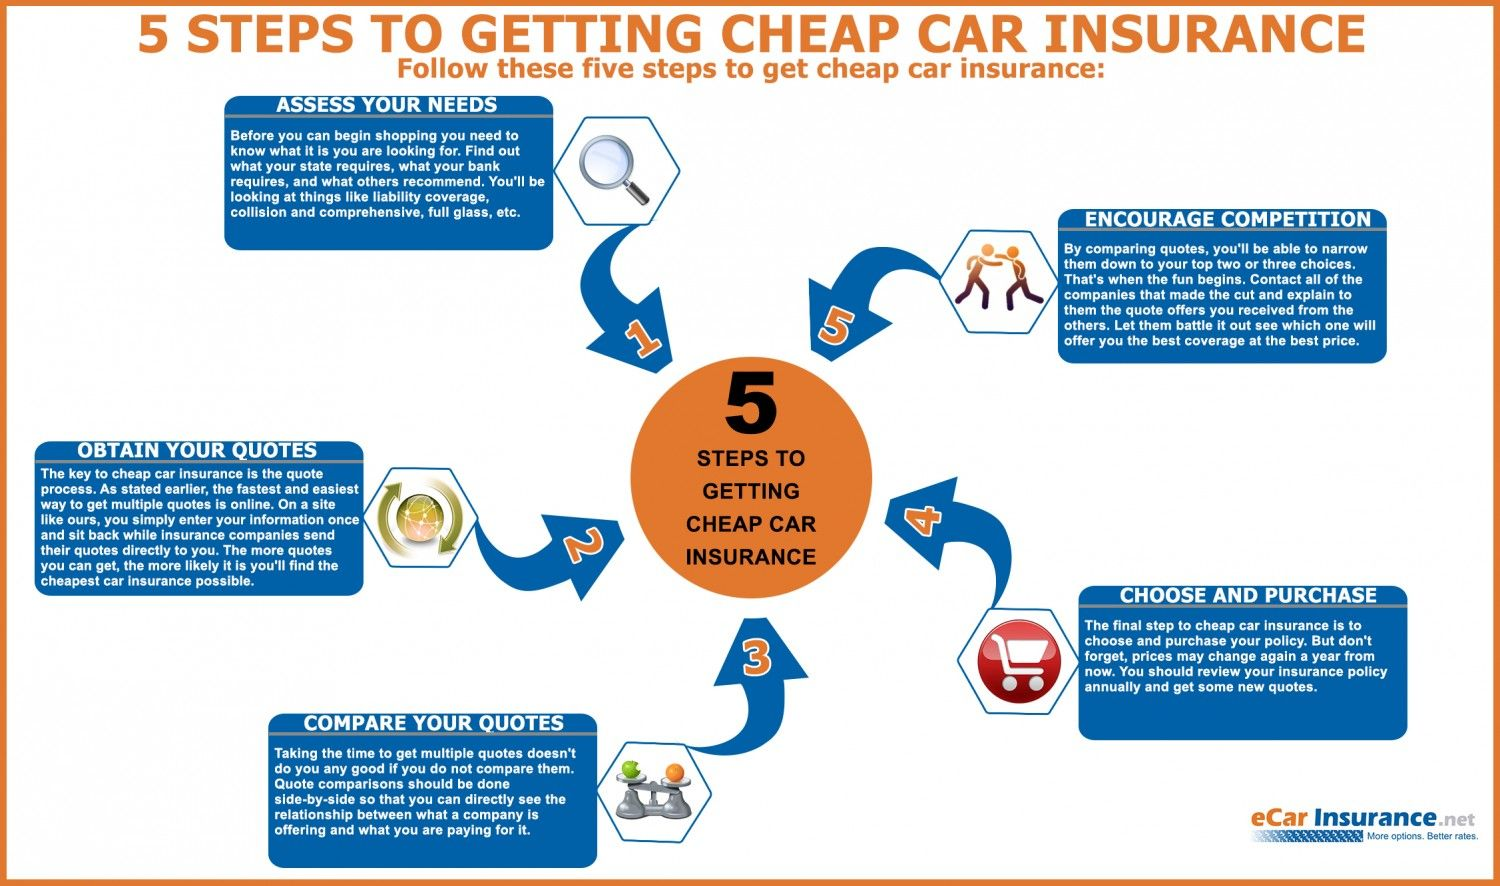 Insurance Quotes Auto Interesting 5 Steps To Getting Cheap Car Insurance #infographic  Car And Motor